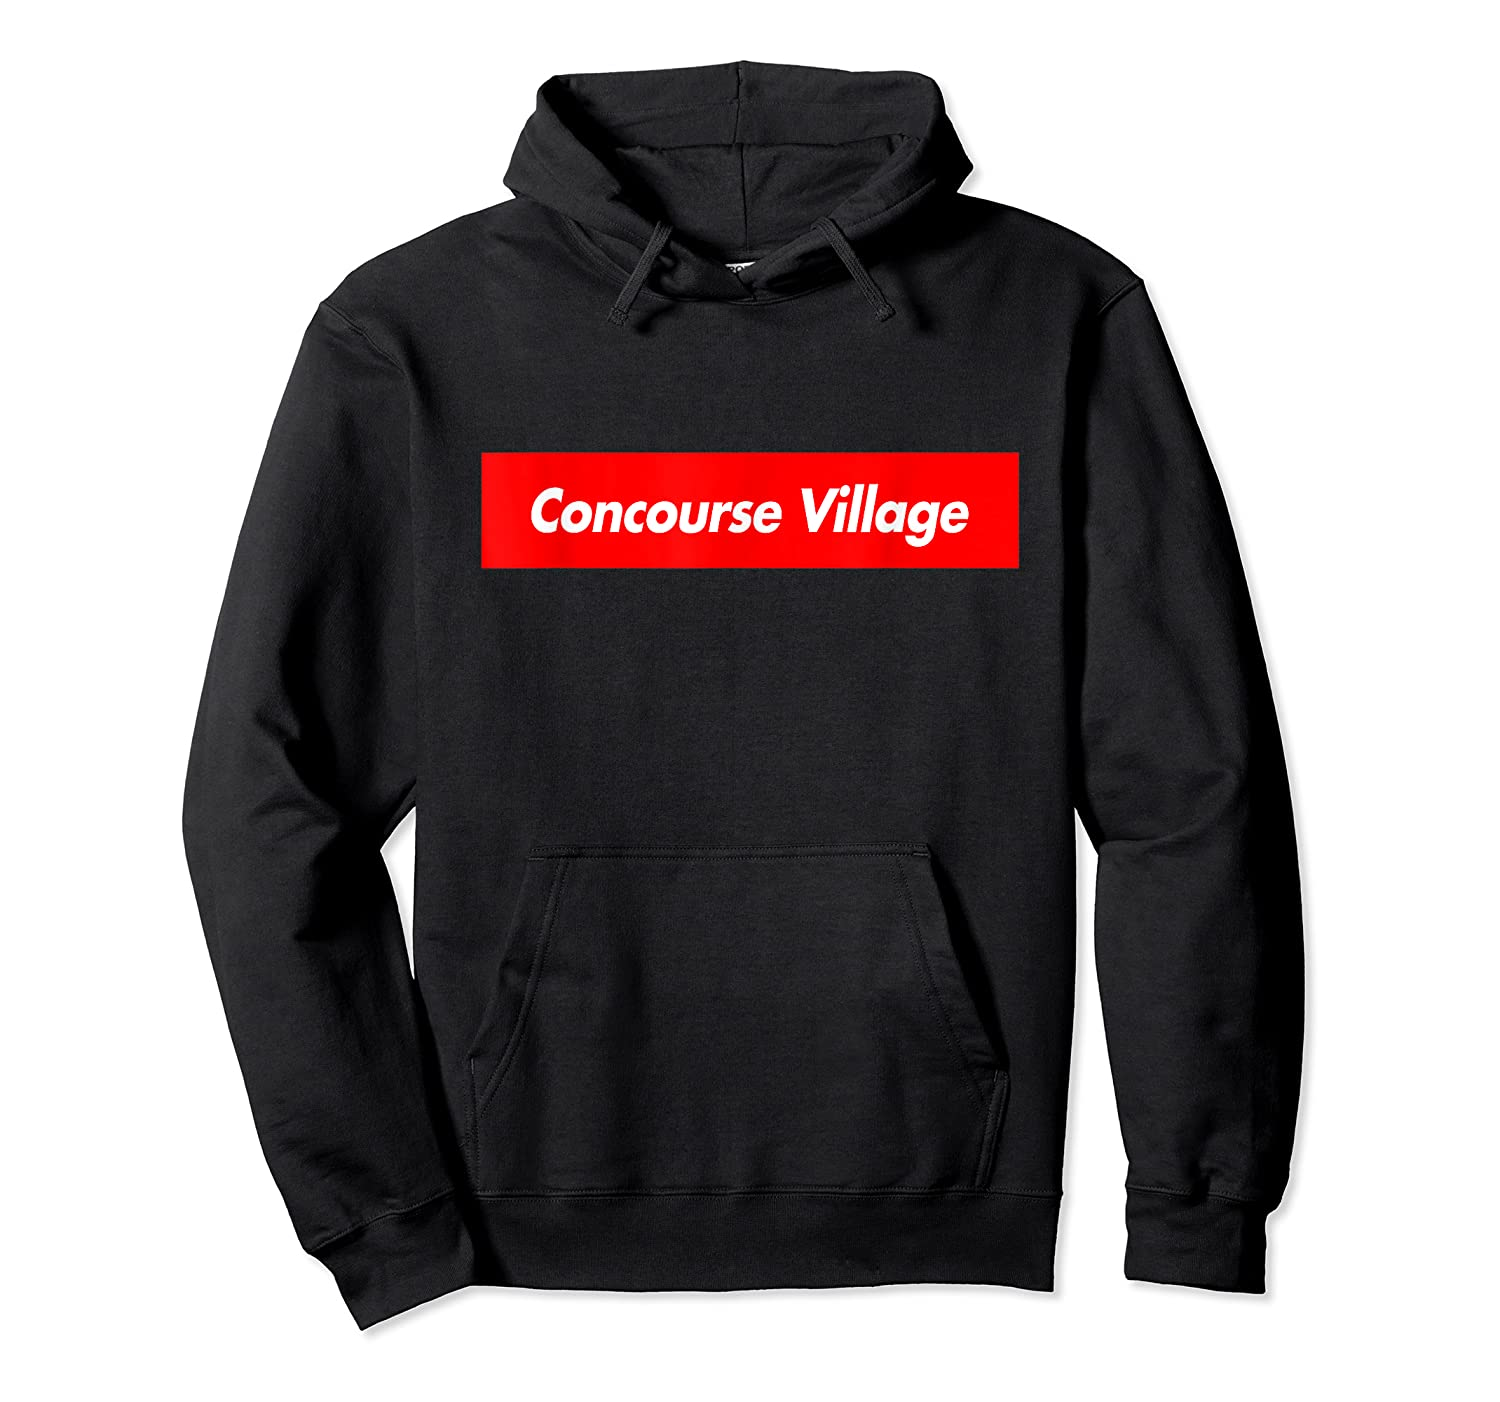 Concourse Village Parody Box Logo Style Funny Shirts Unisex Pullover Hoodie